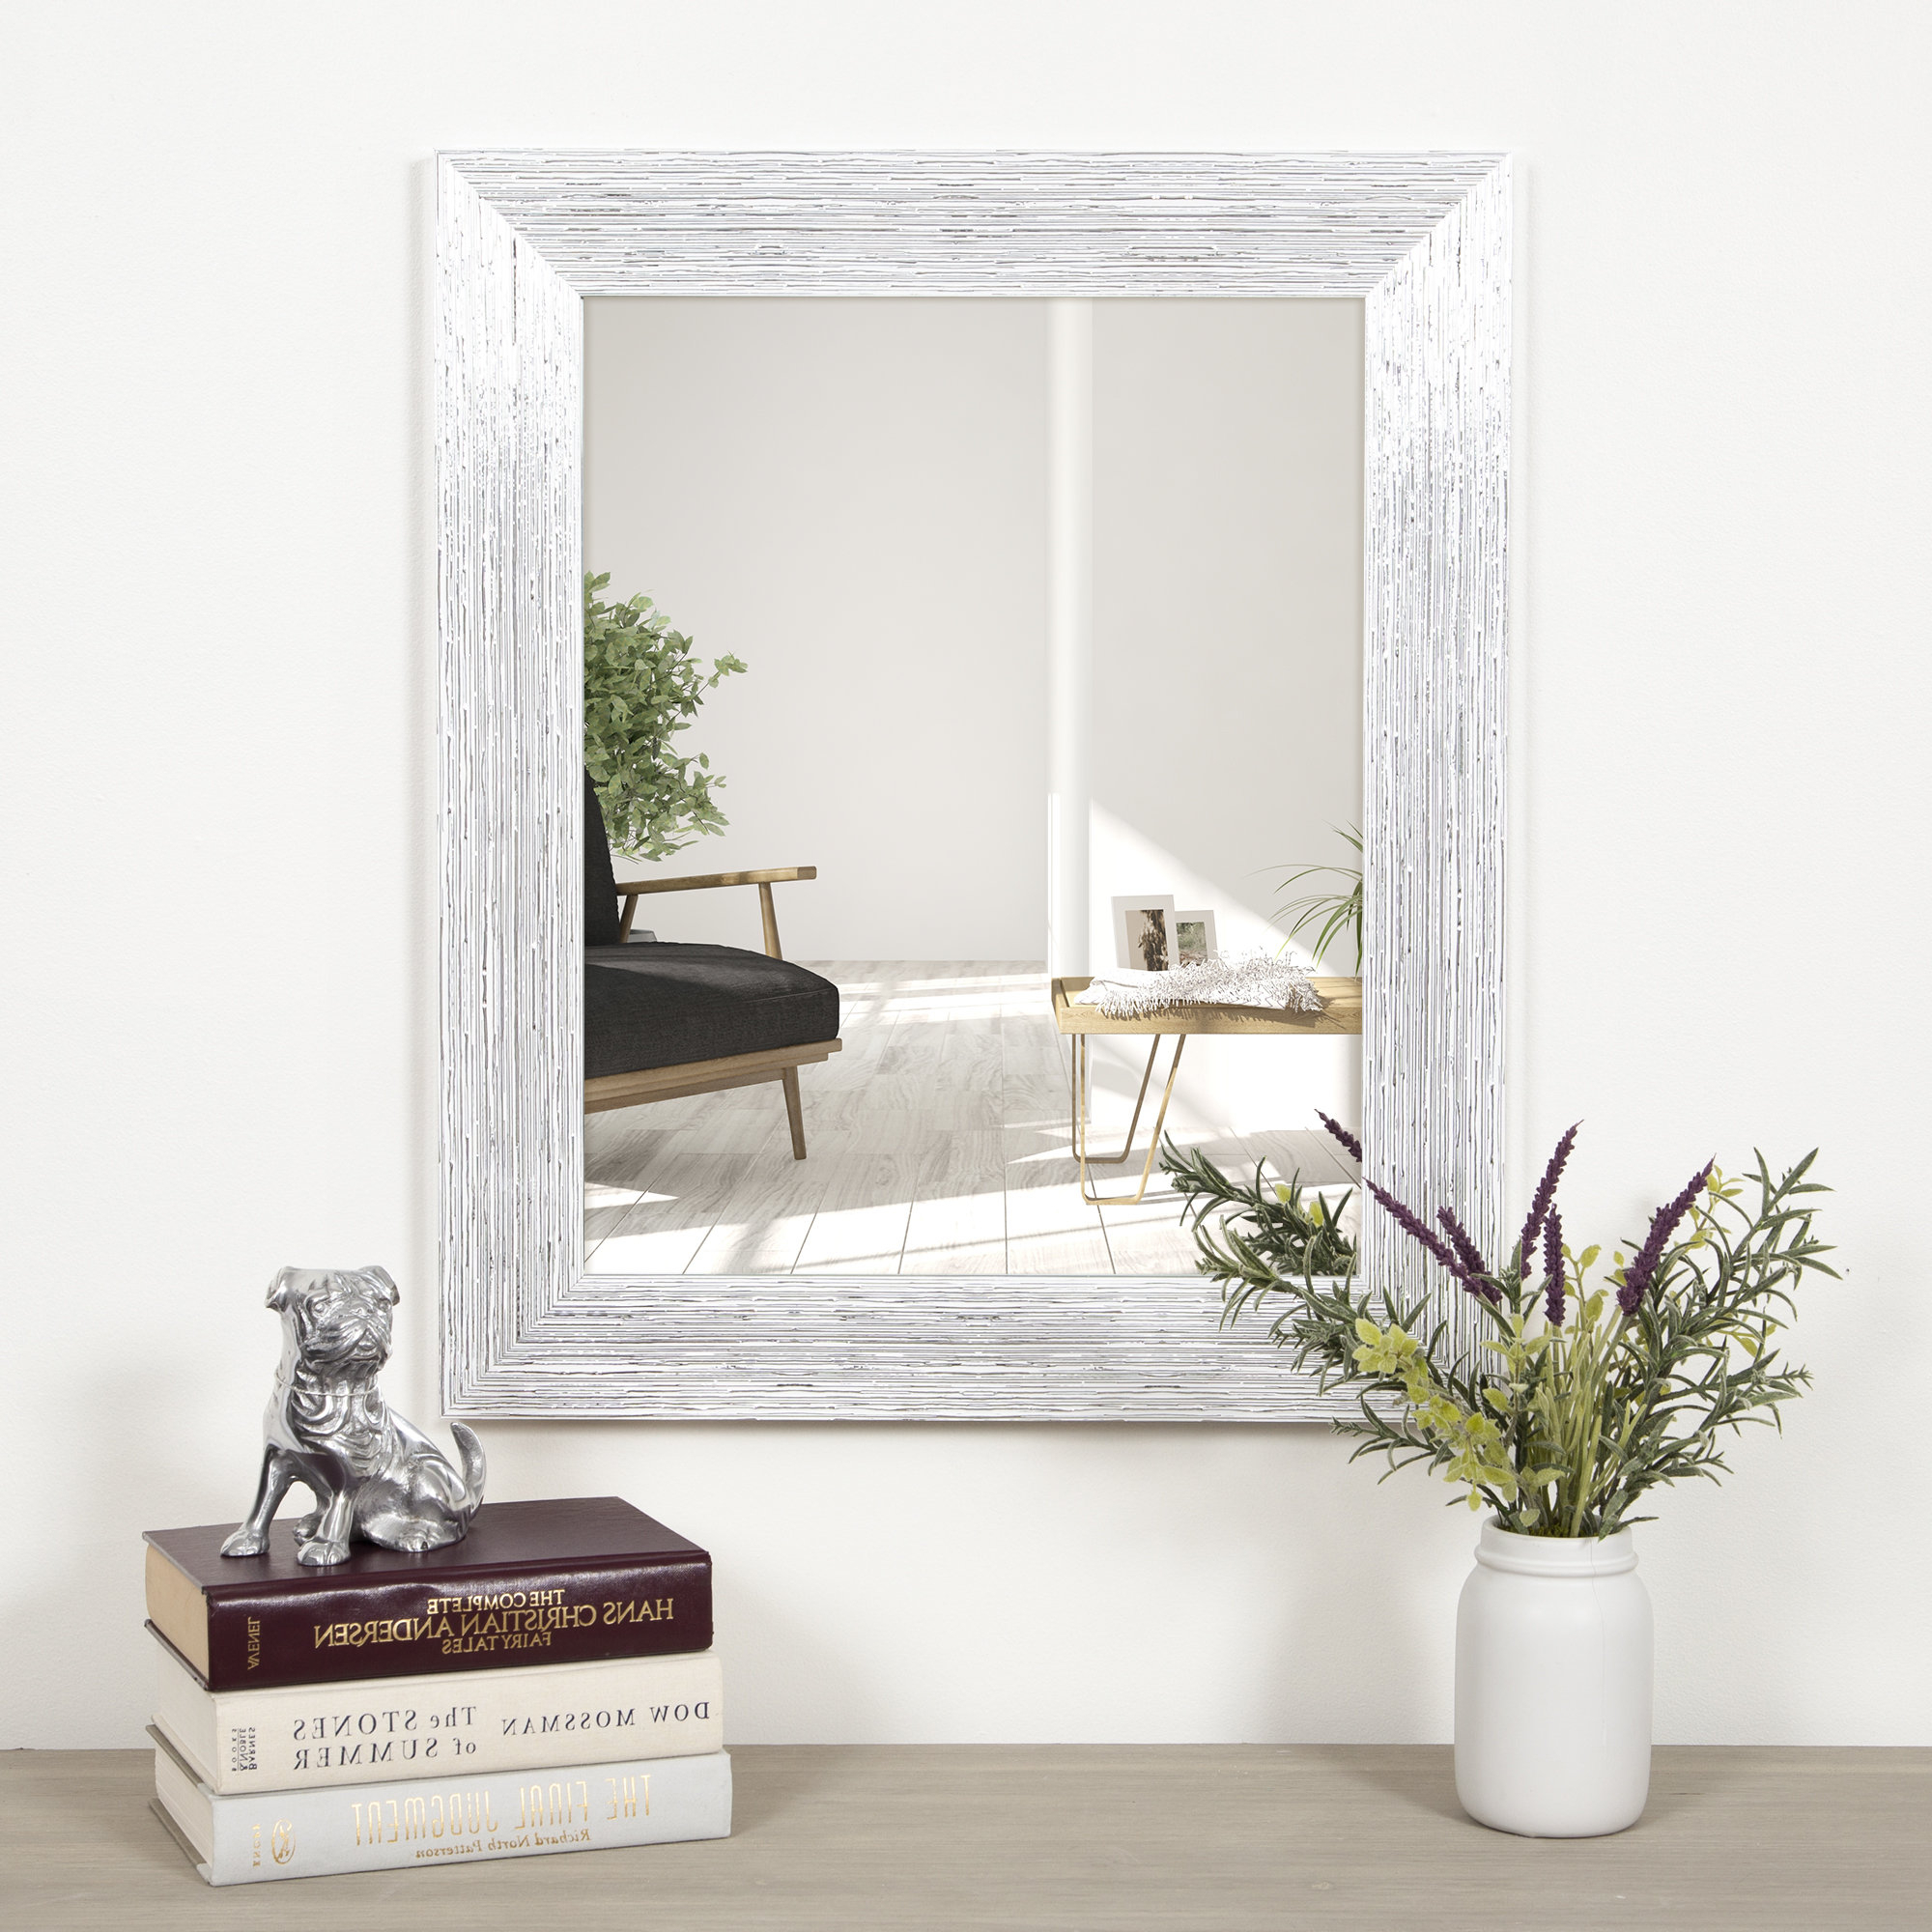 Epinal Shabby Elegance Wall Mirrors Intended For 2019 Clarisse Textured Framed Accent Mirror (View 7 of 20)